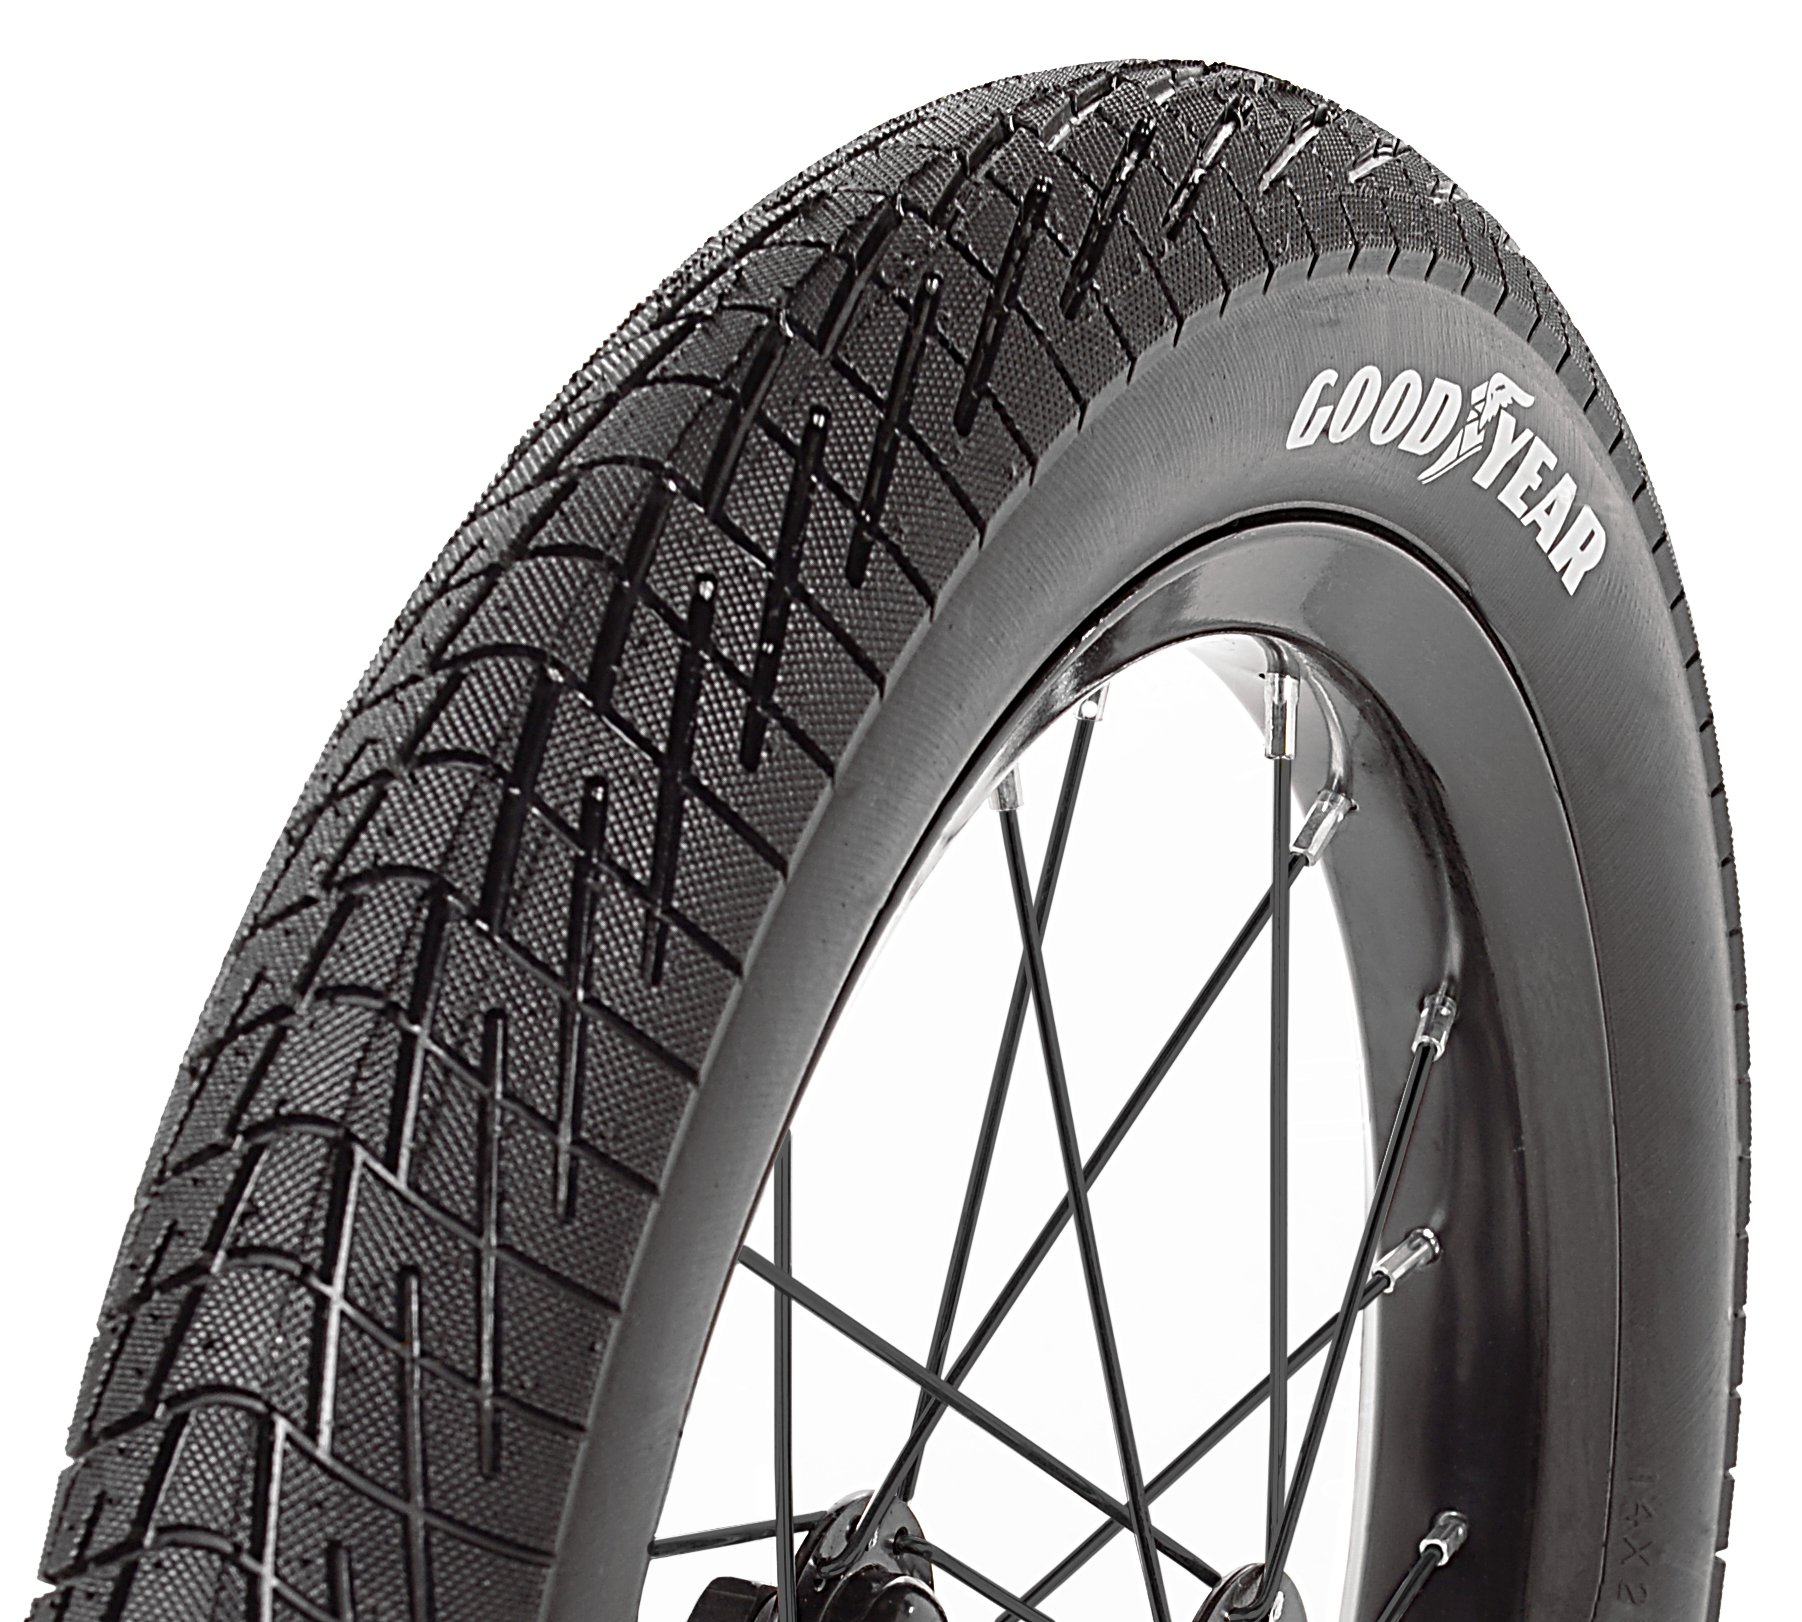 Goodyear Folding Bead Bicycle Tire, 14'' x 1.5/2.25'', Black